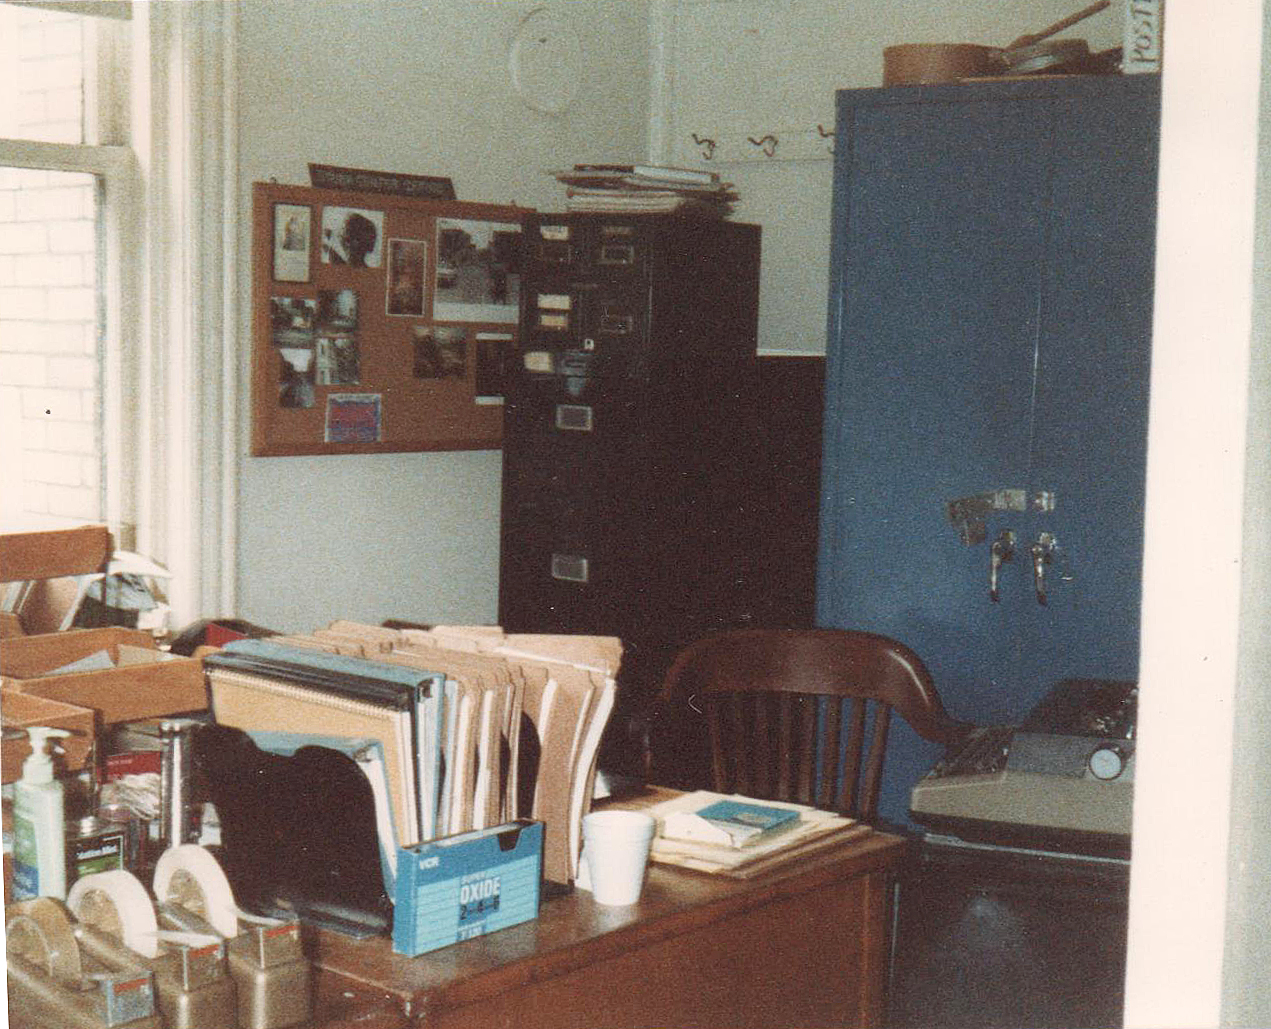 The Study Center at 51 West 4th Street in 1985